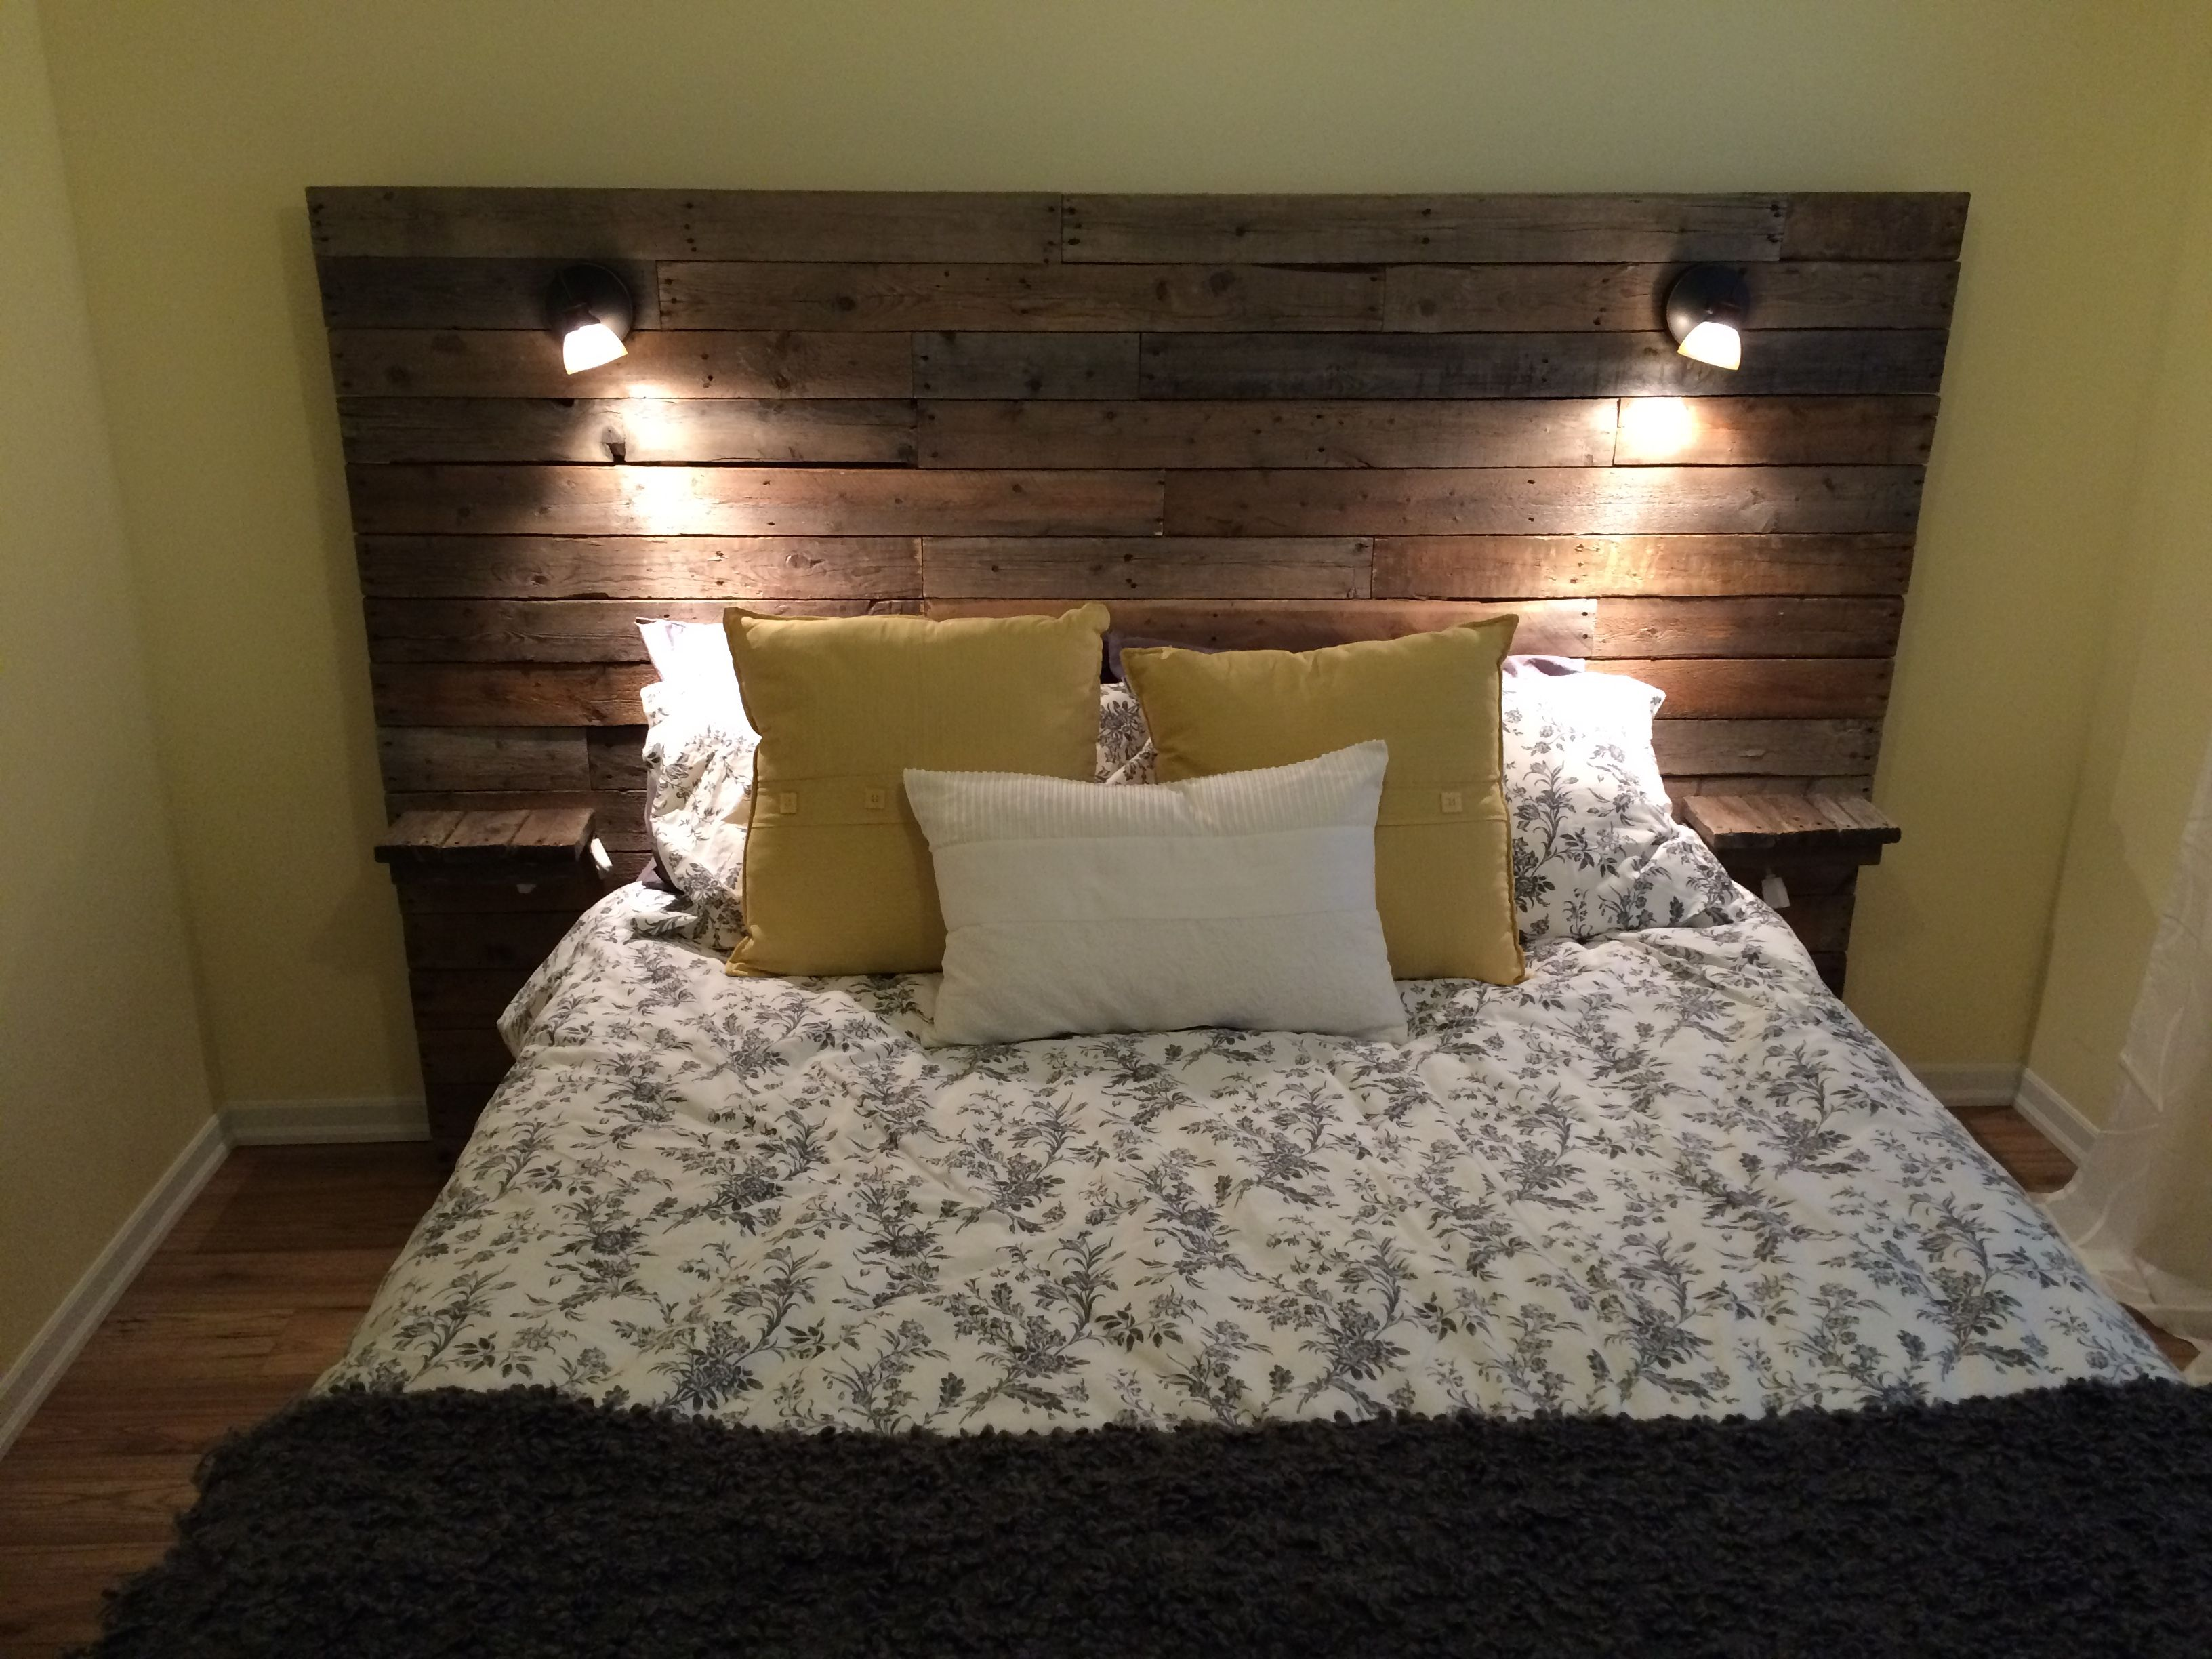 Pallet headboard with shelf  lights and plugs for cell phones  Created for  customer. Pallet headboard with shelf  lights and plugs for cell phones